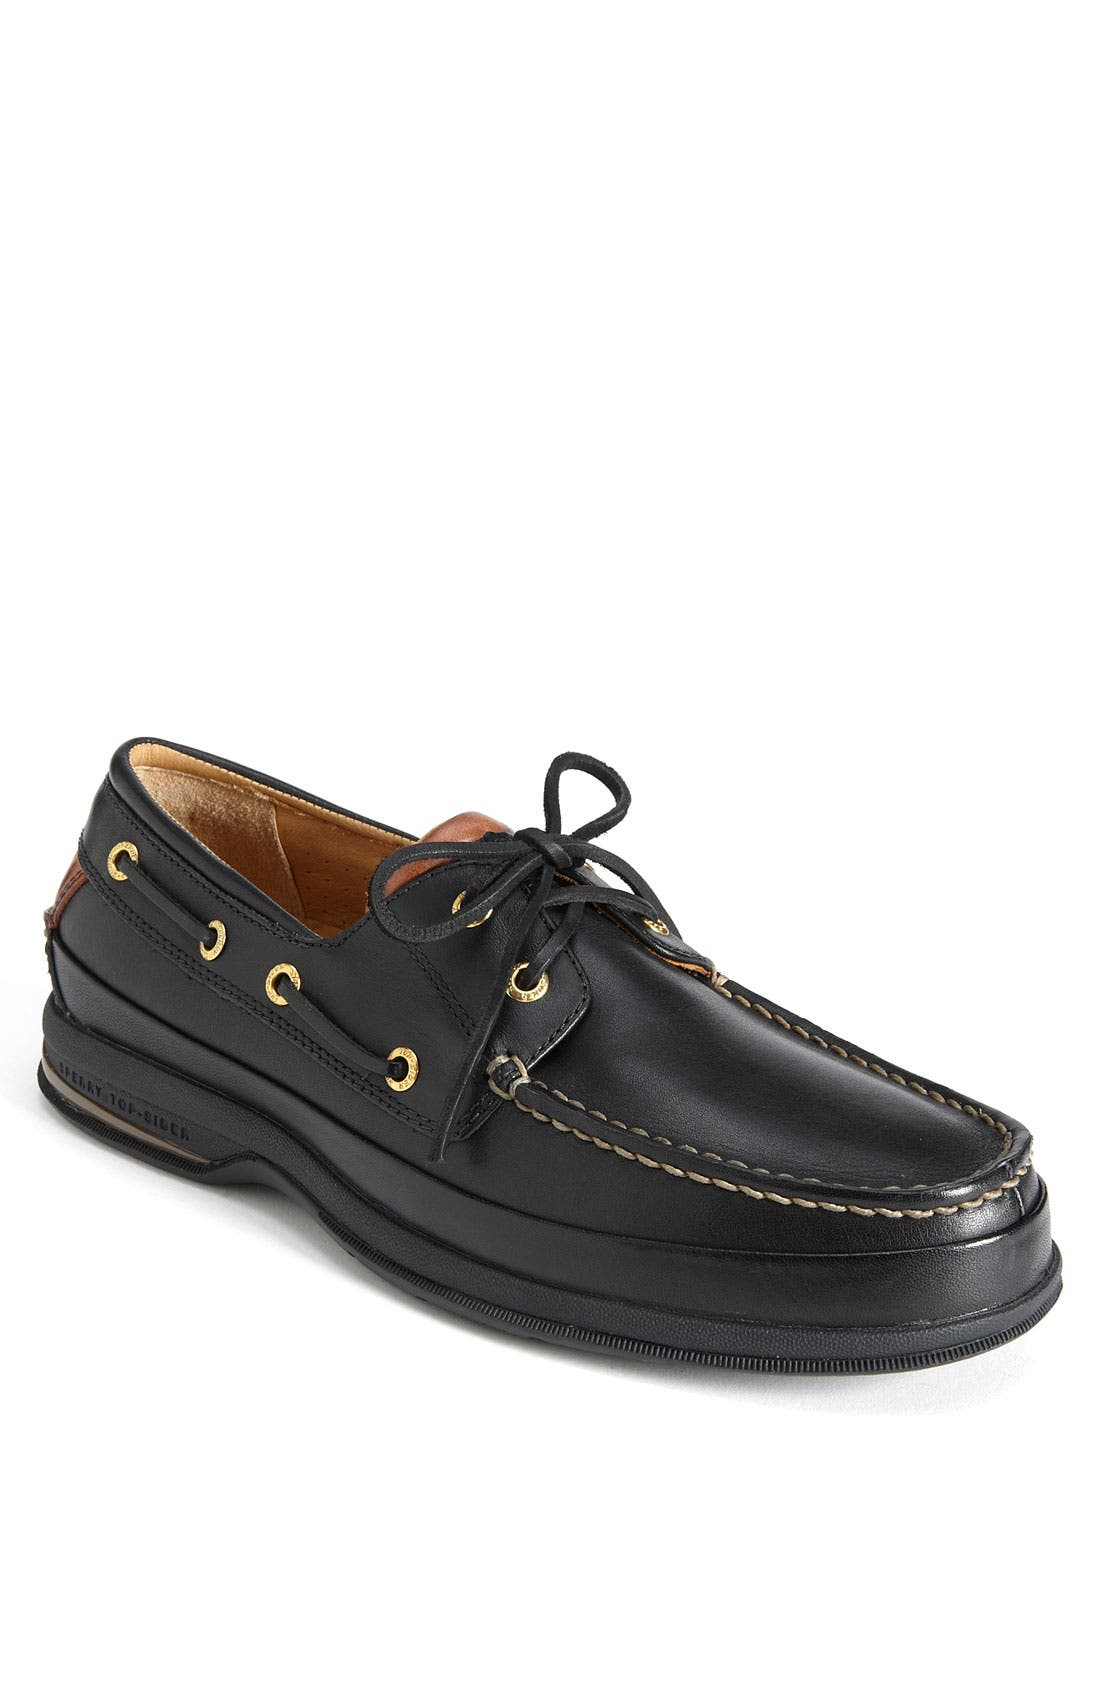 Alternate Image 1 Selected - Sperry 'Gold Cup 2-Eye ASV' Boat Shoe (Men)